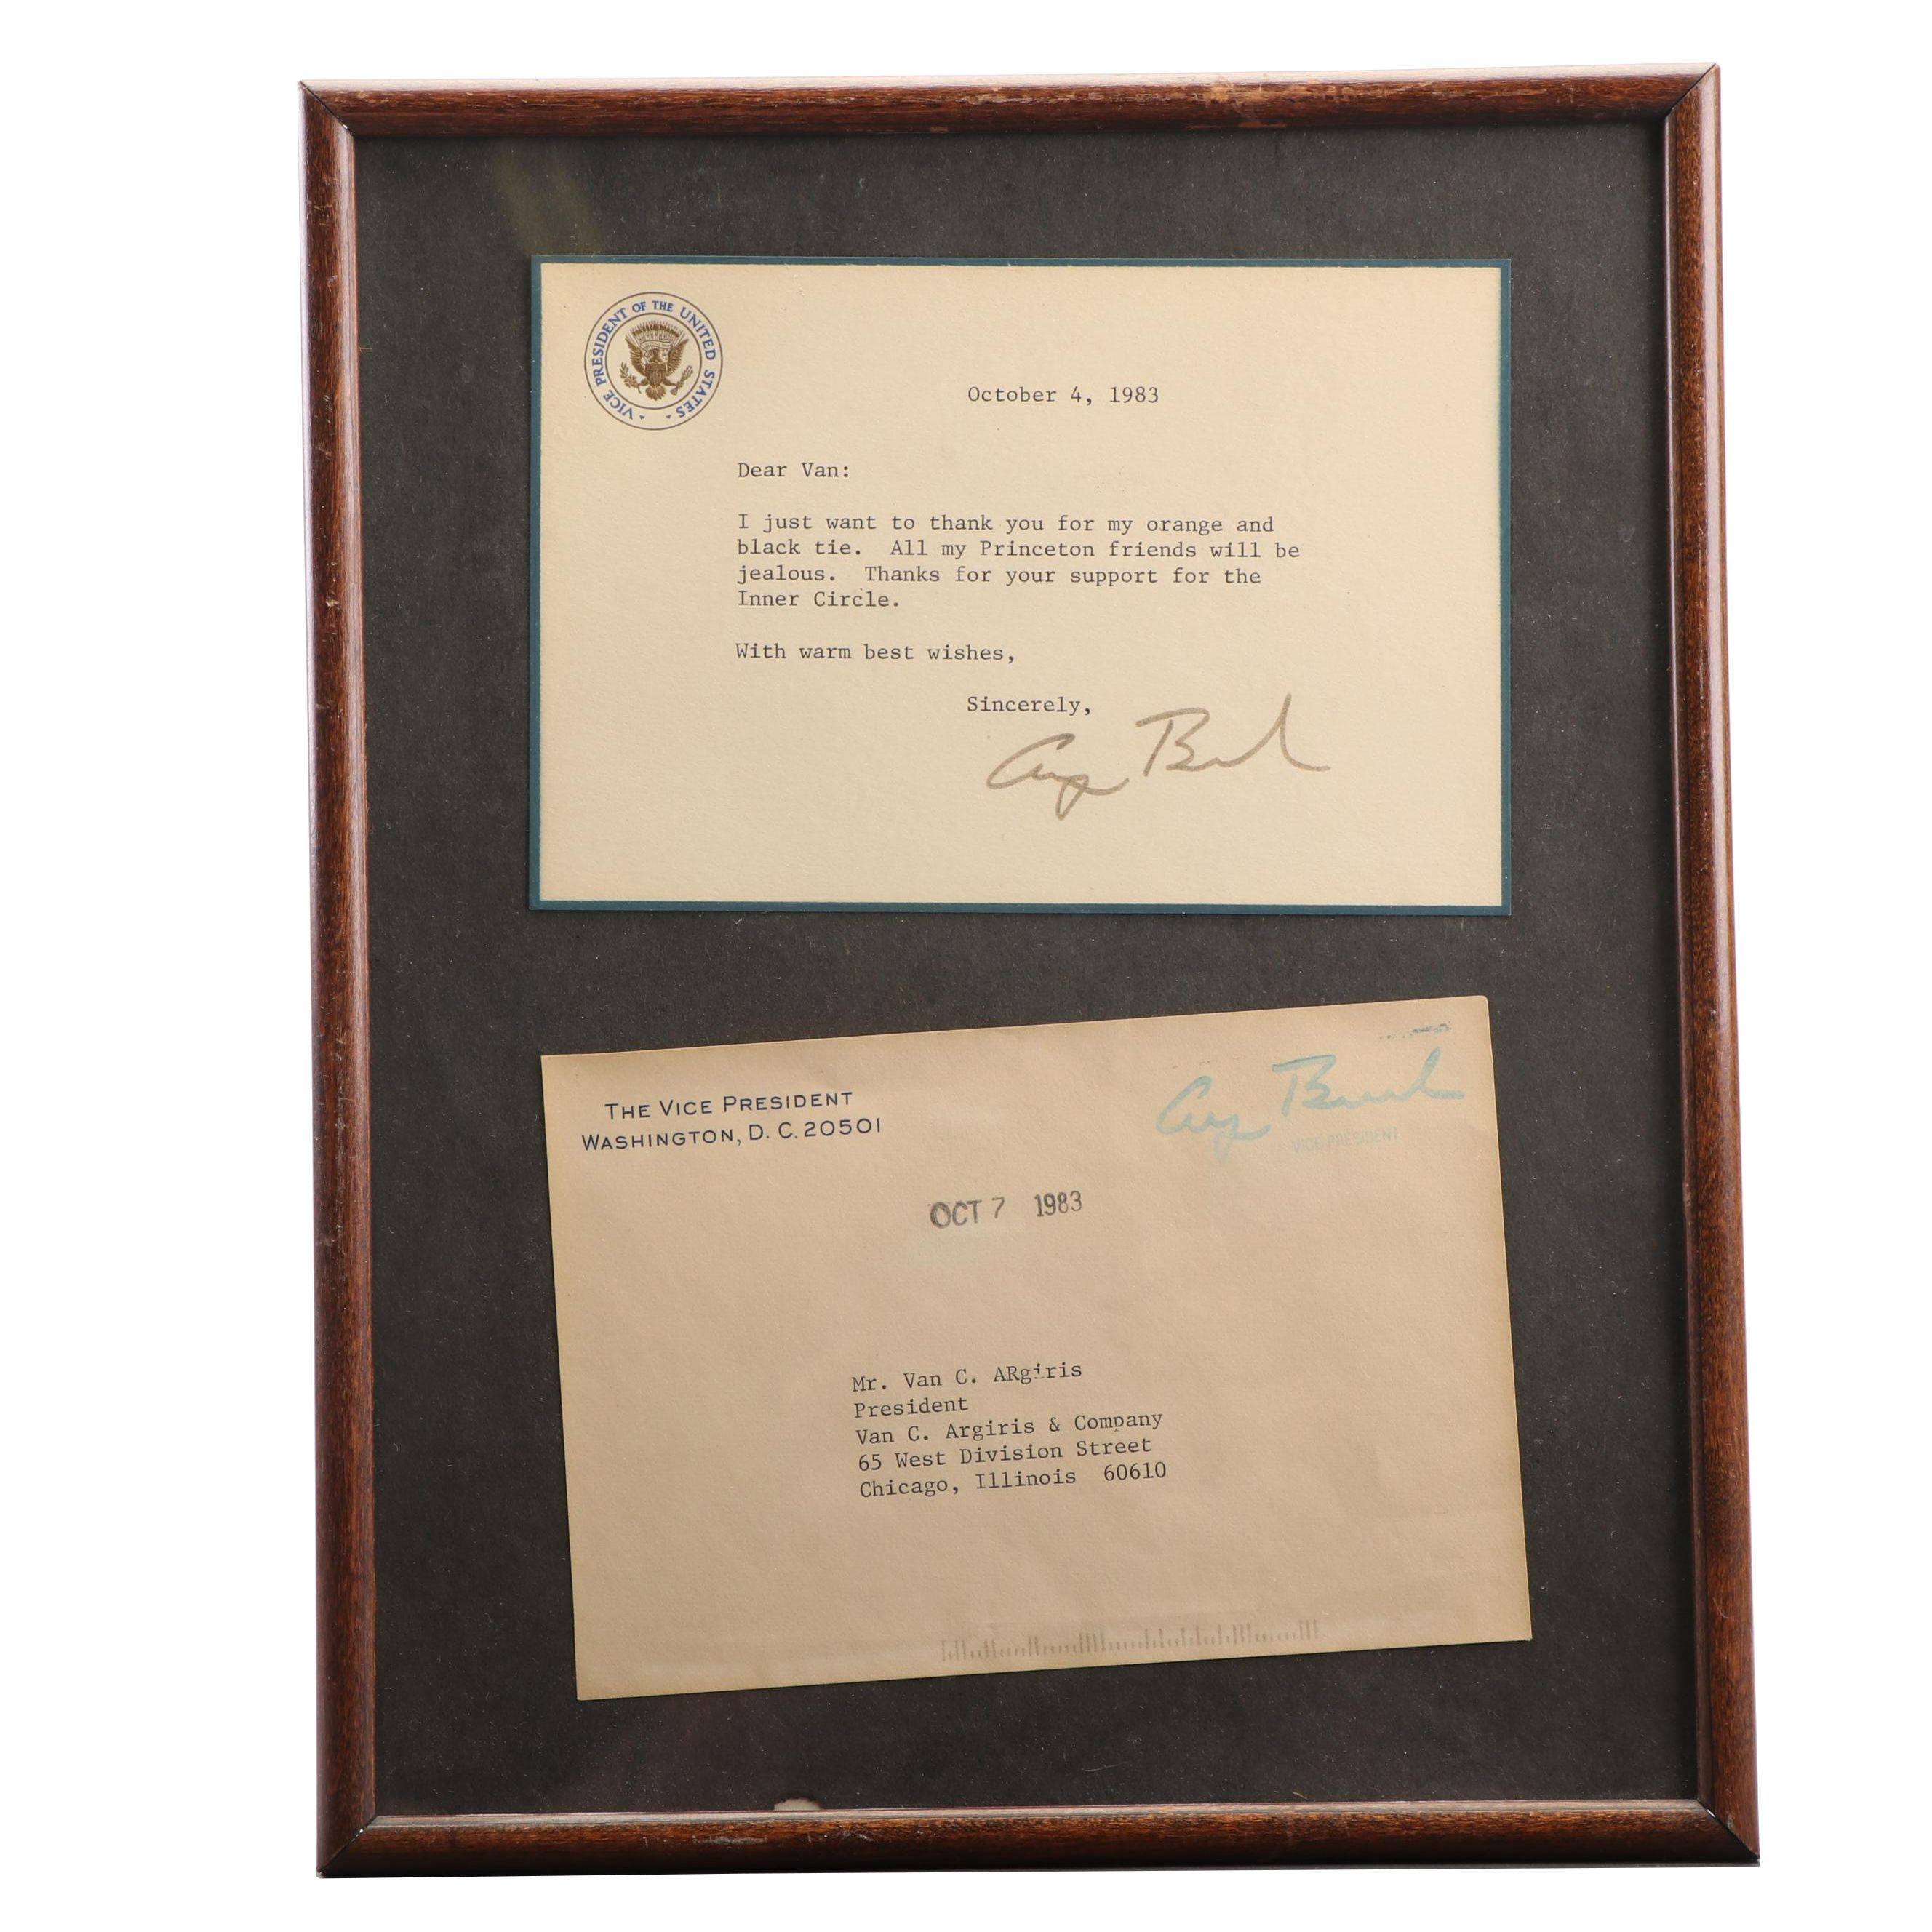 Signed and Stamped Letter by George H. W. Bush, 1983